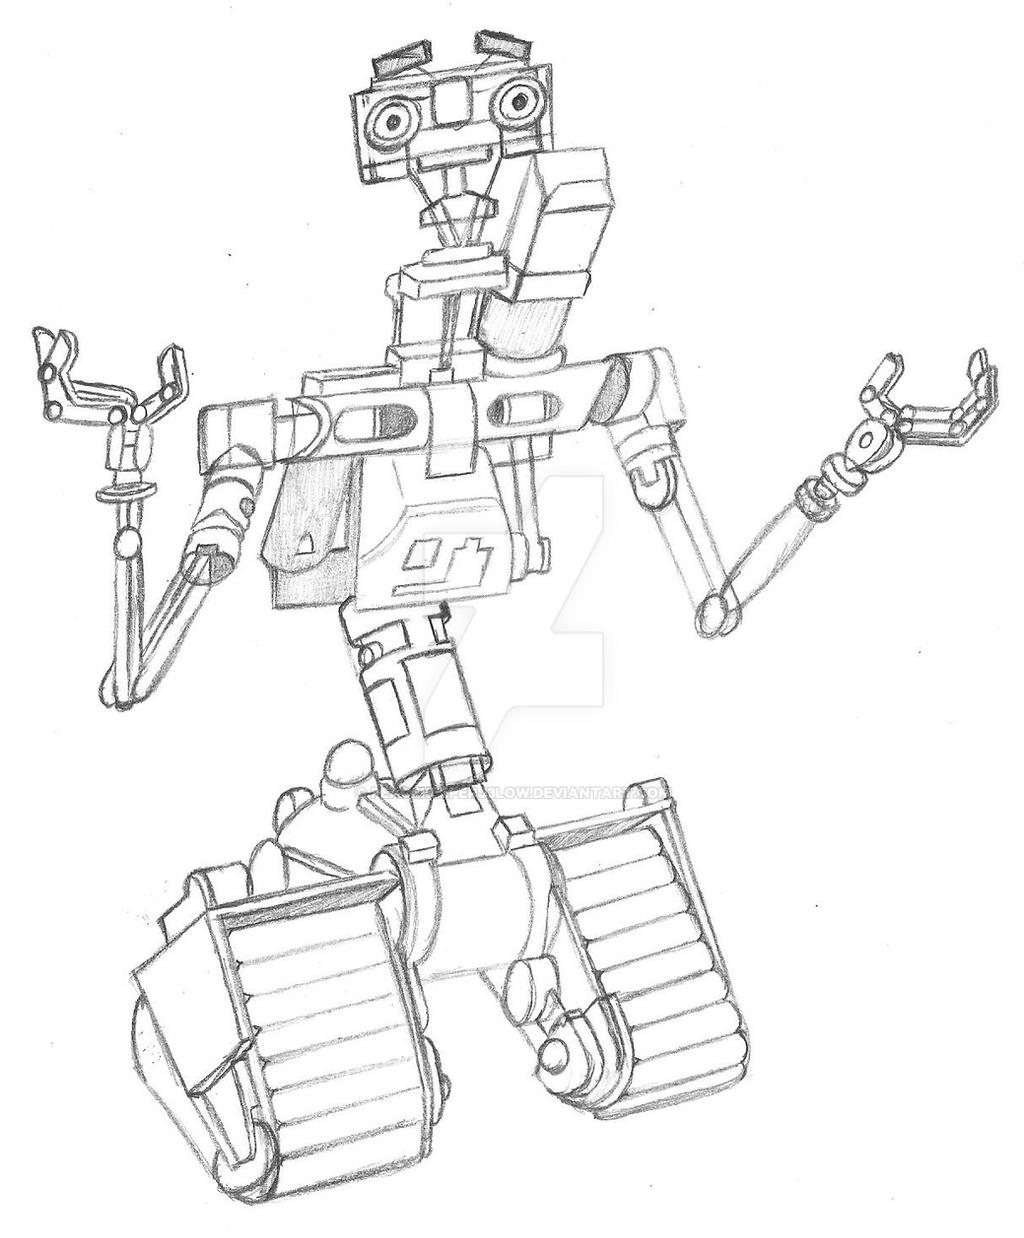 johnny 5  sketch  by peacekeeperj3low on deviantart